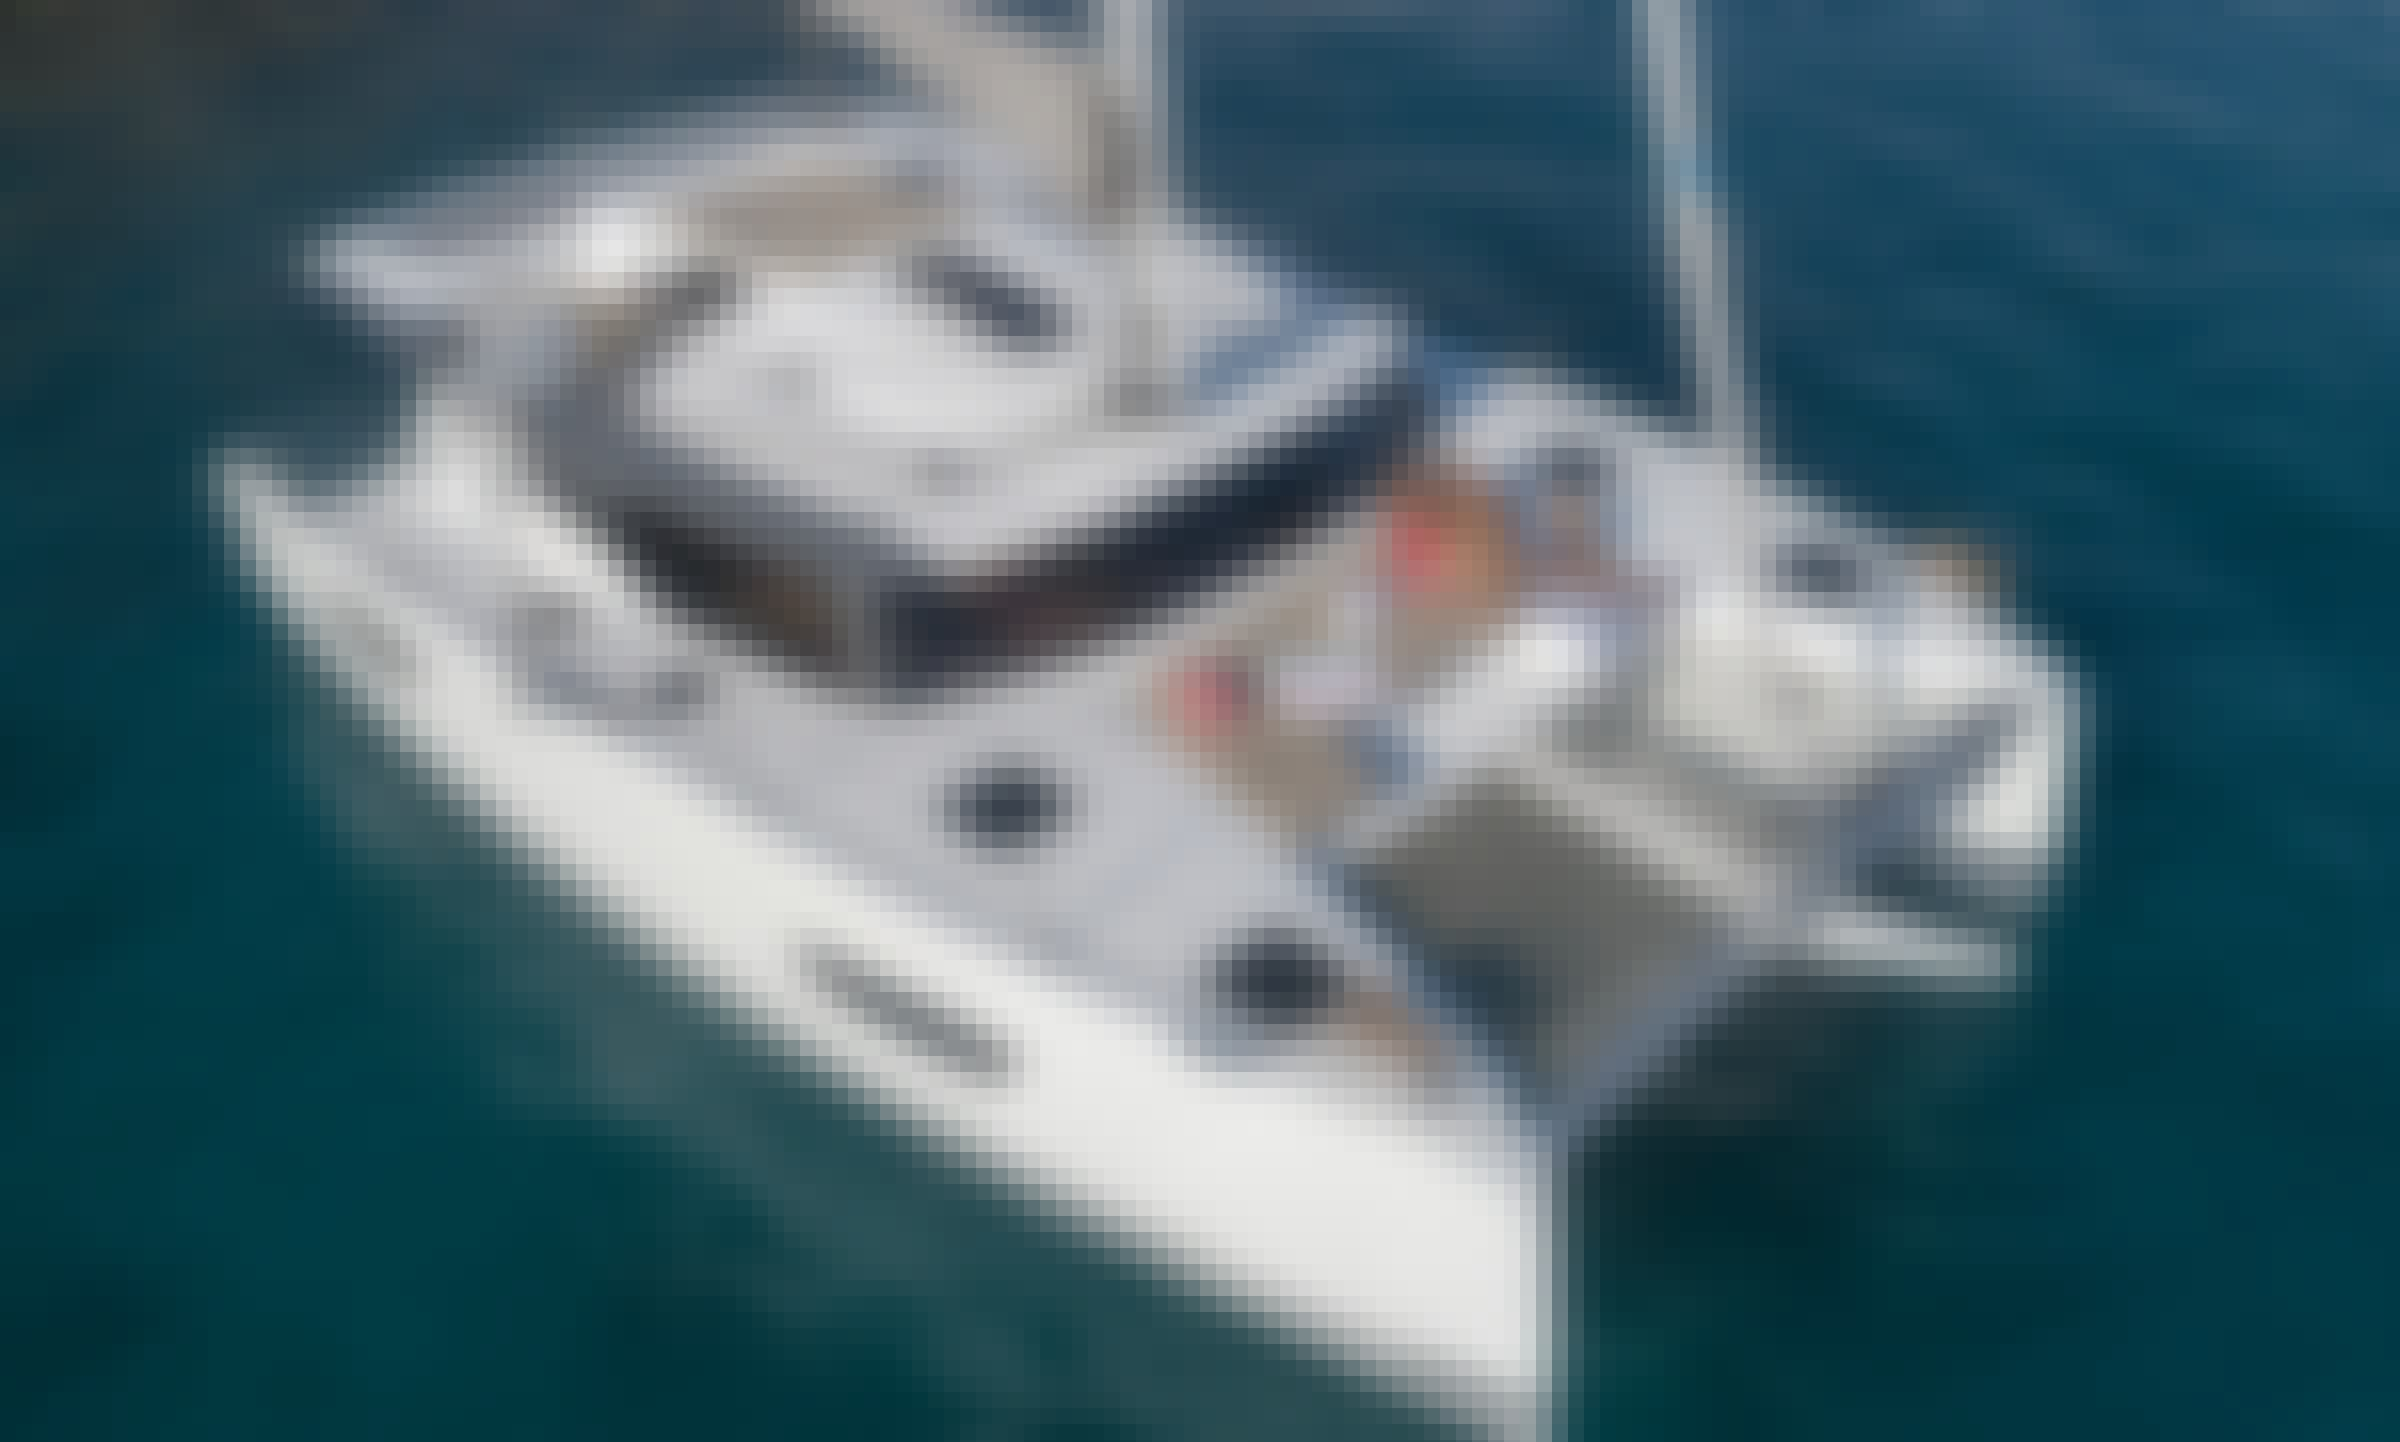 Fountain Pajot Astrea Luxury 42' Catamaran for Charter